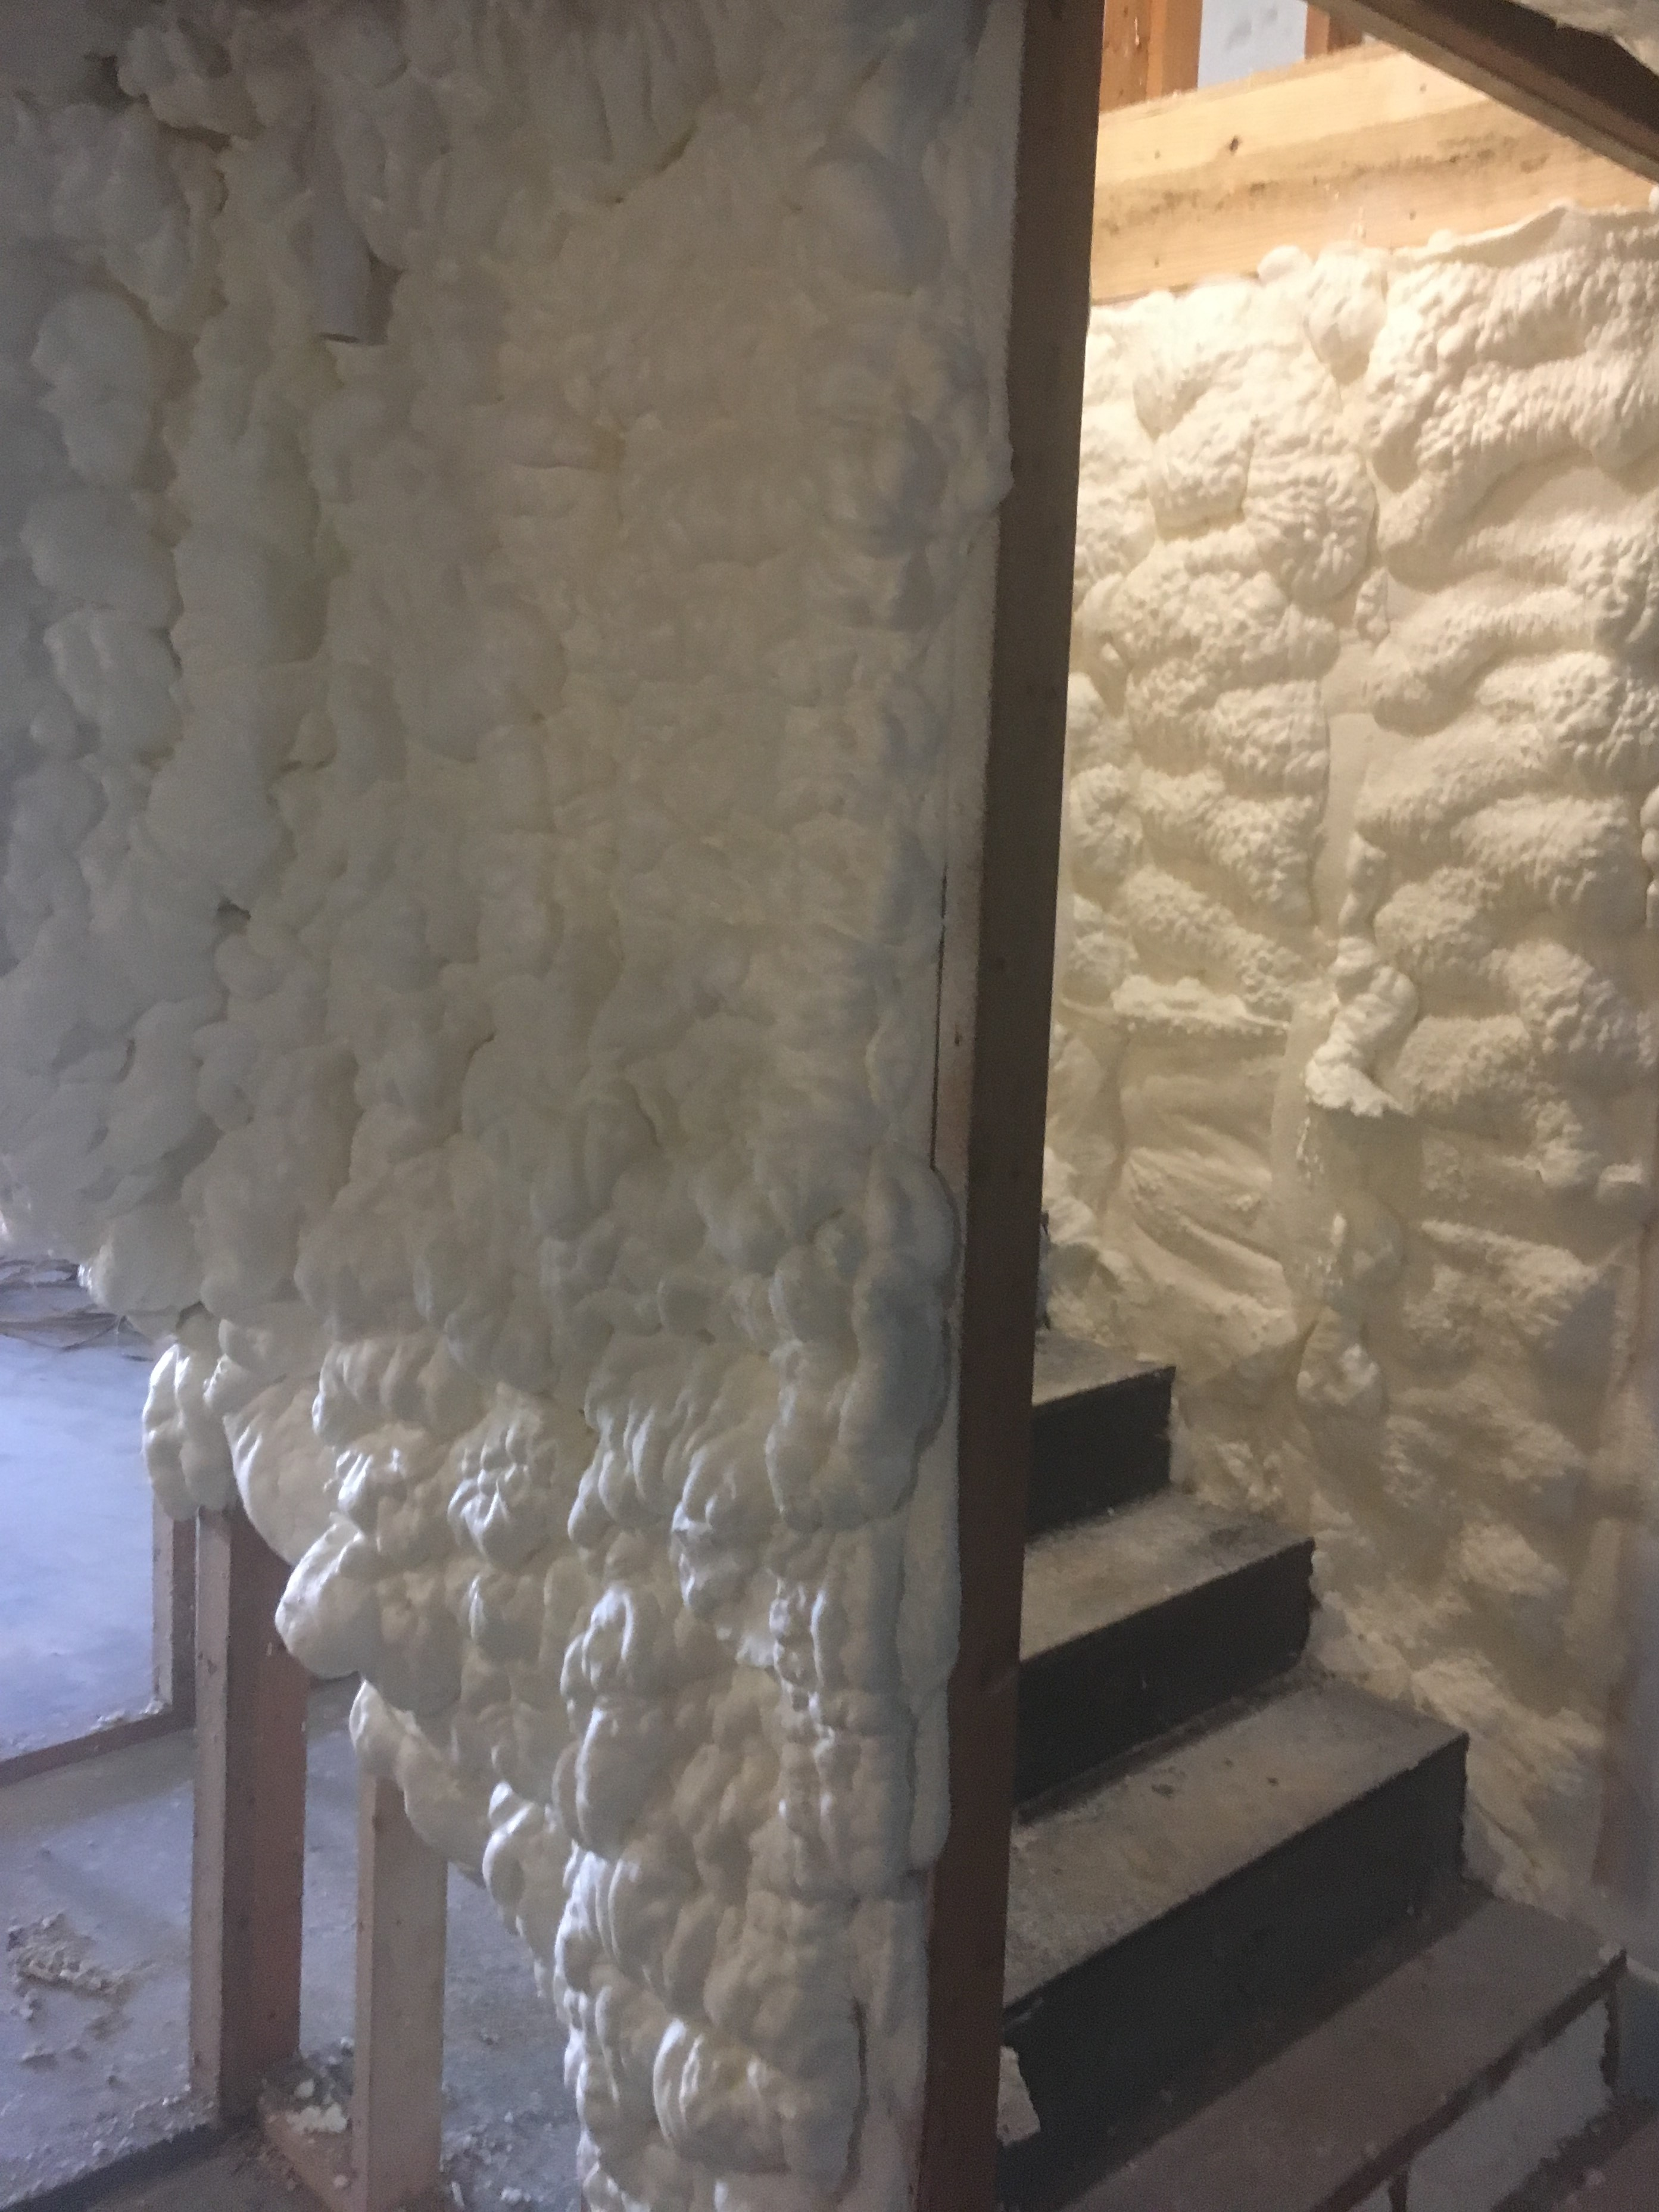 spray foam insulated to prevent energy escaping